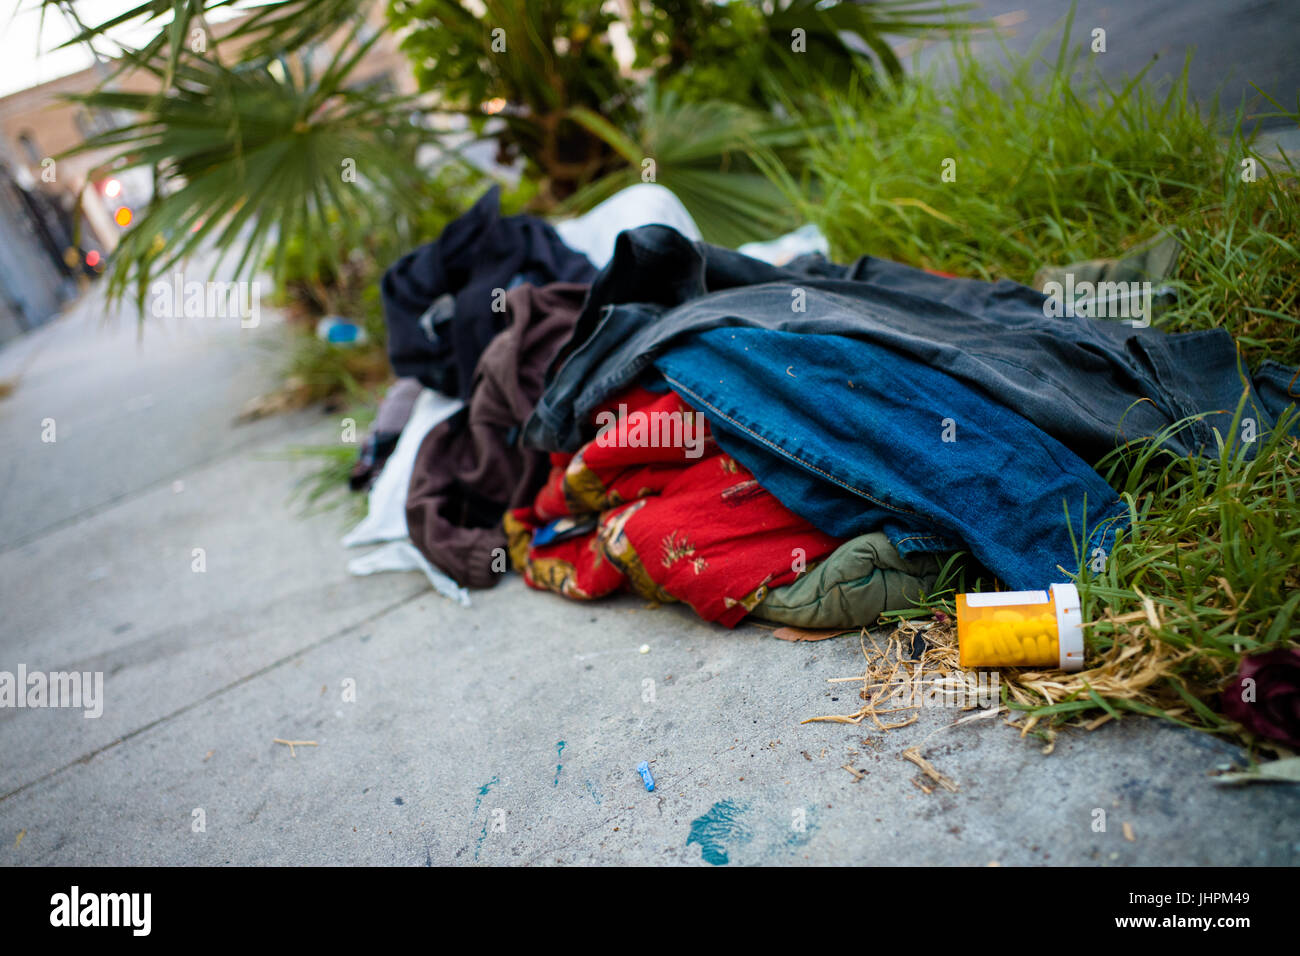 Pharmaceutical pills and scattered clothes lay abandoned on a city sidewalk in Hollywood, Los Angeles, California. - Stock Image